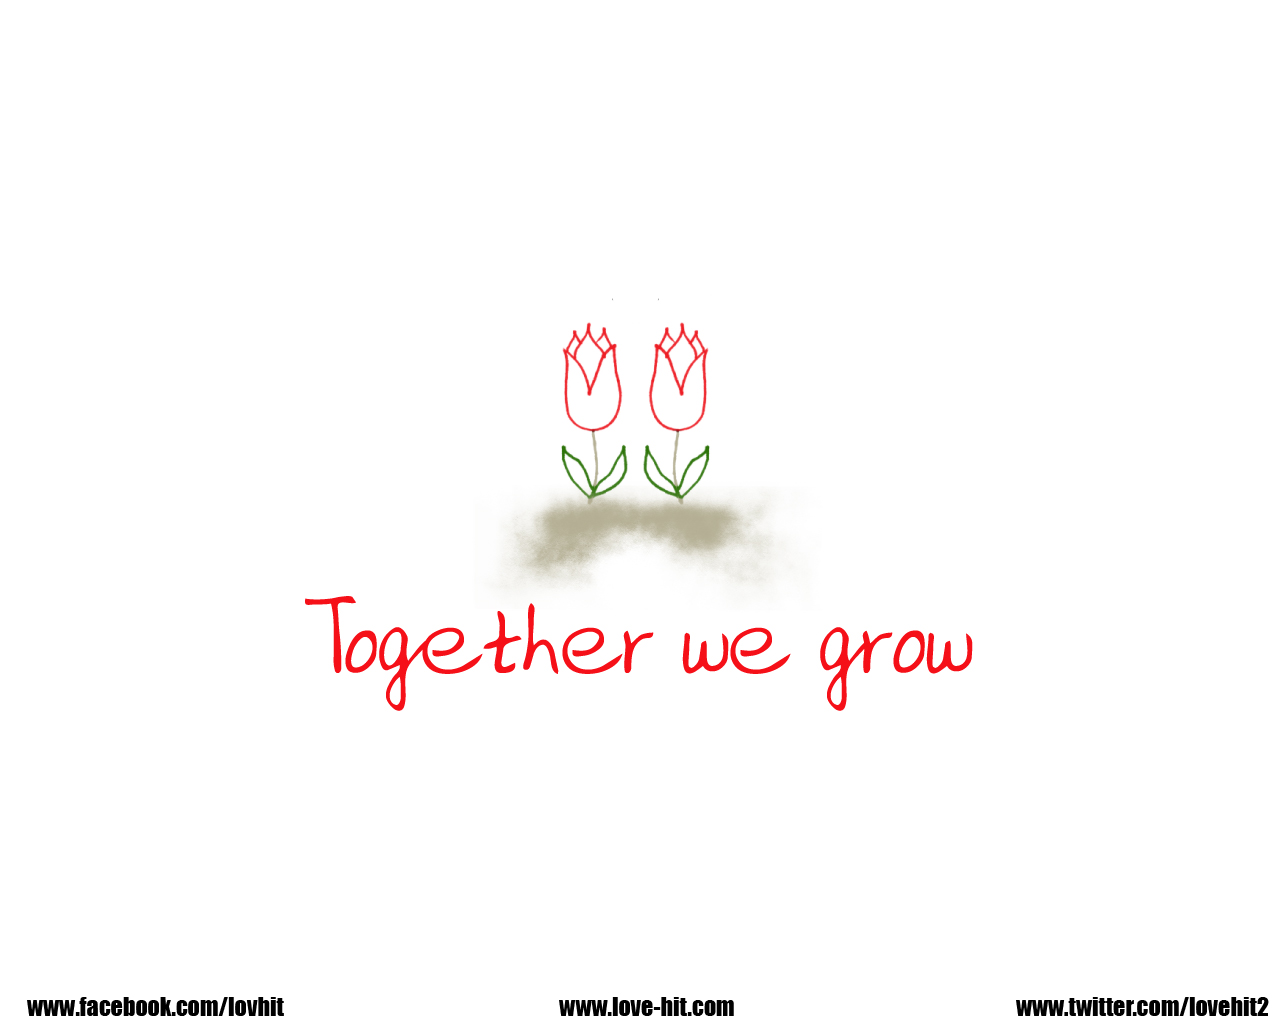 Together we grow, together we cherish, together we prosper, together